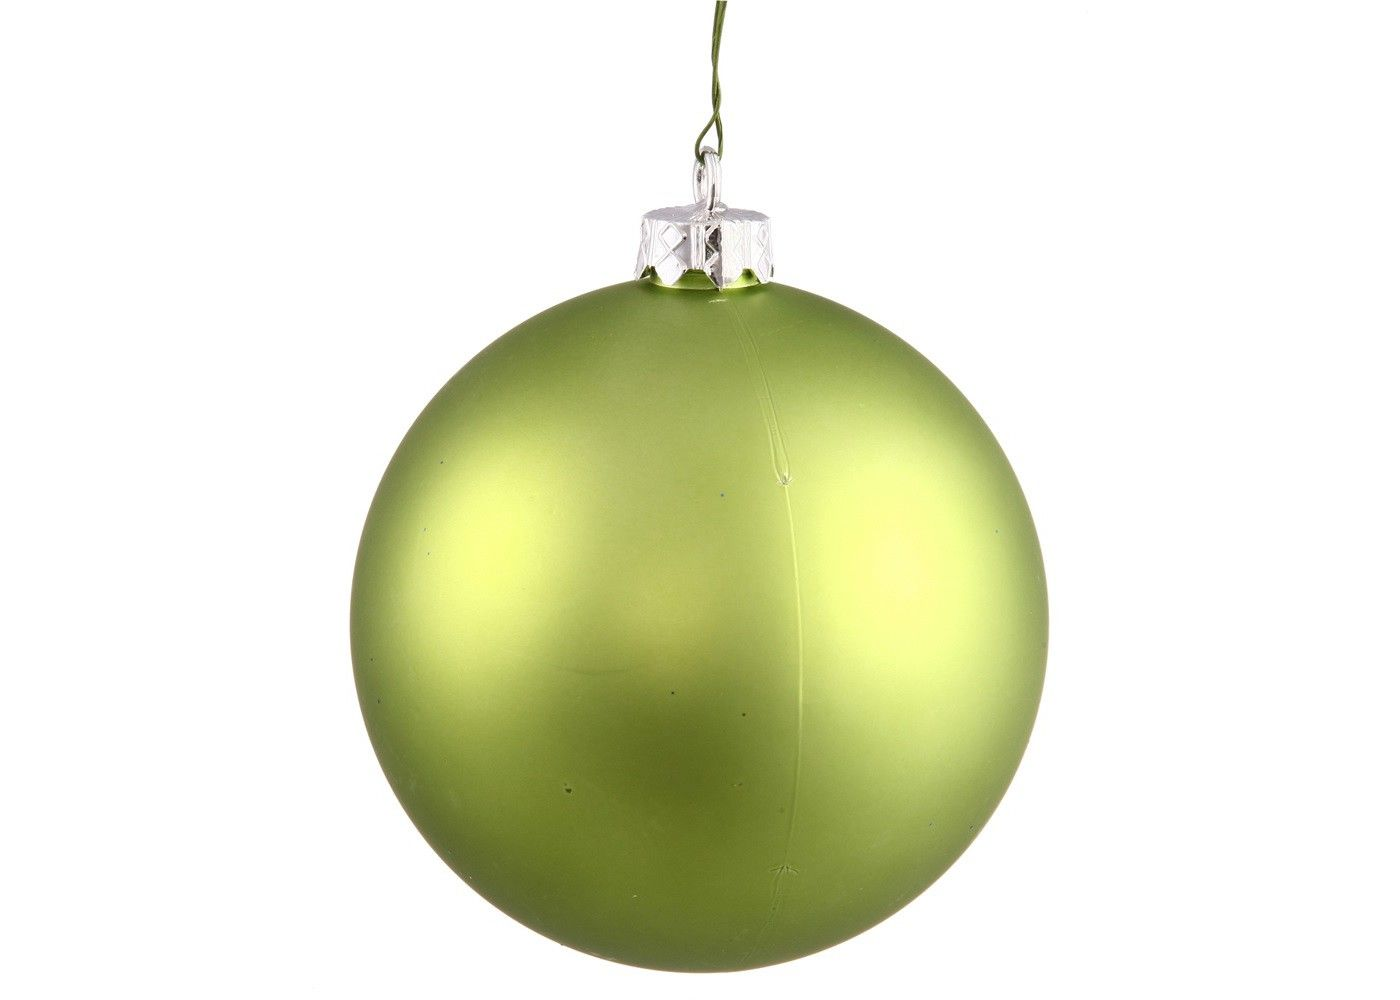 Vickerman 2 75 Matte Drilled Shatterproof Christmas Ball Ornament Green Ball Ornaments Christmas Balls The Holiday Aisle